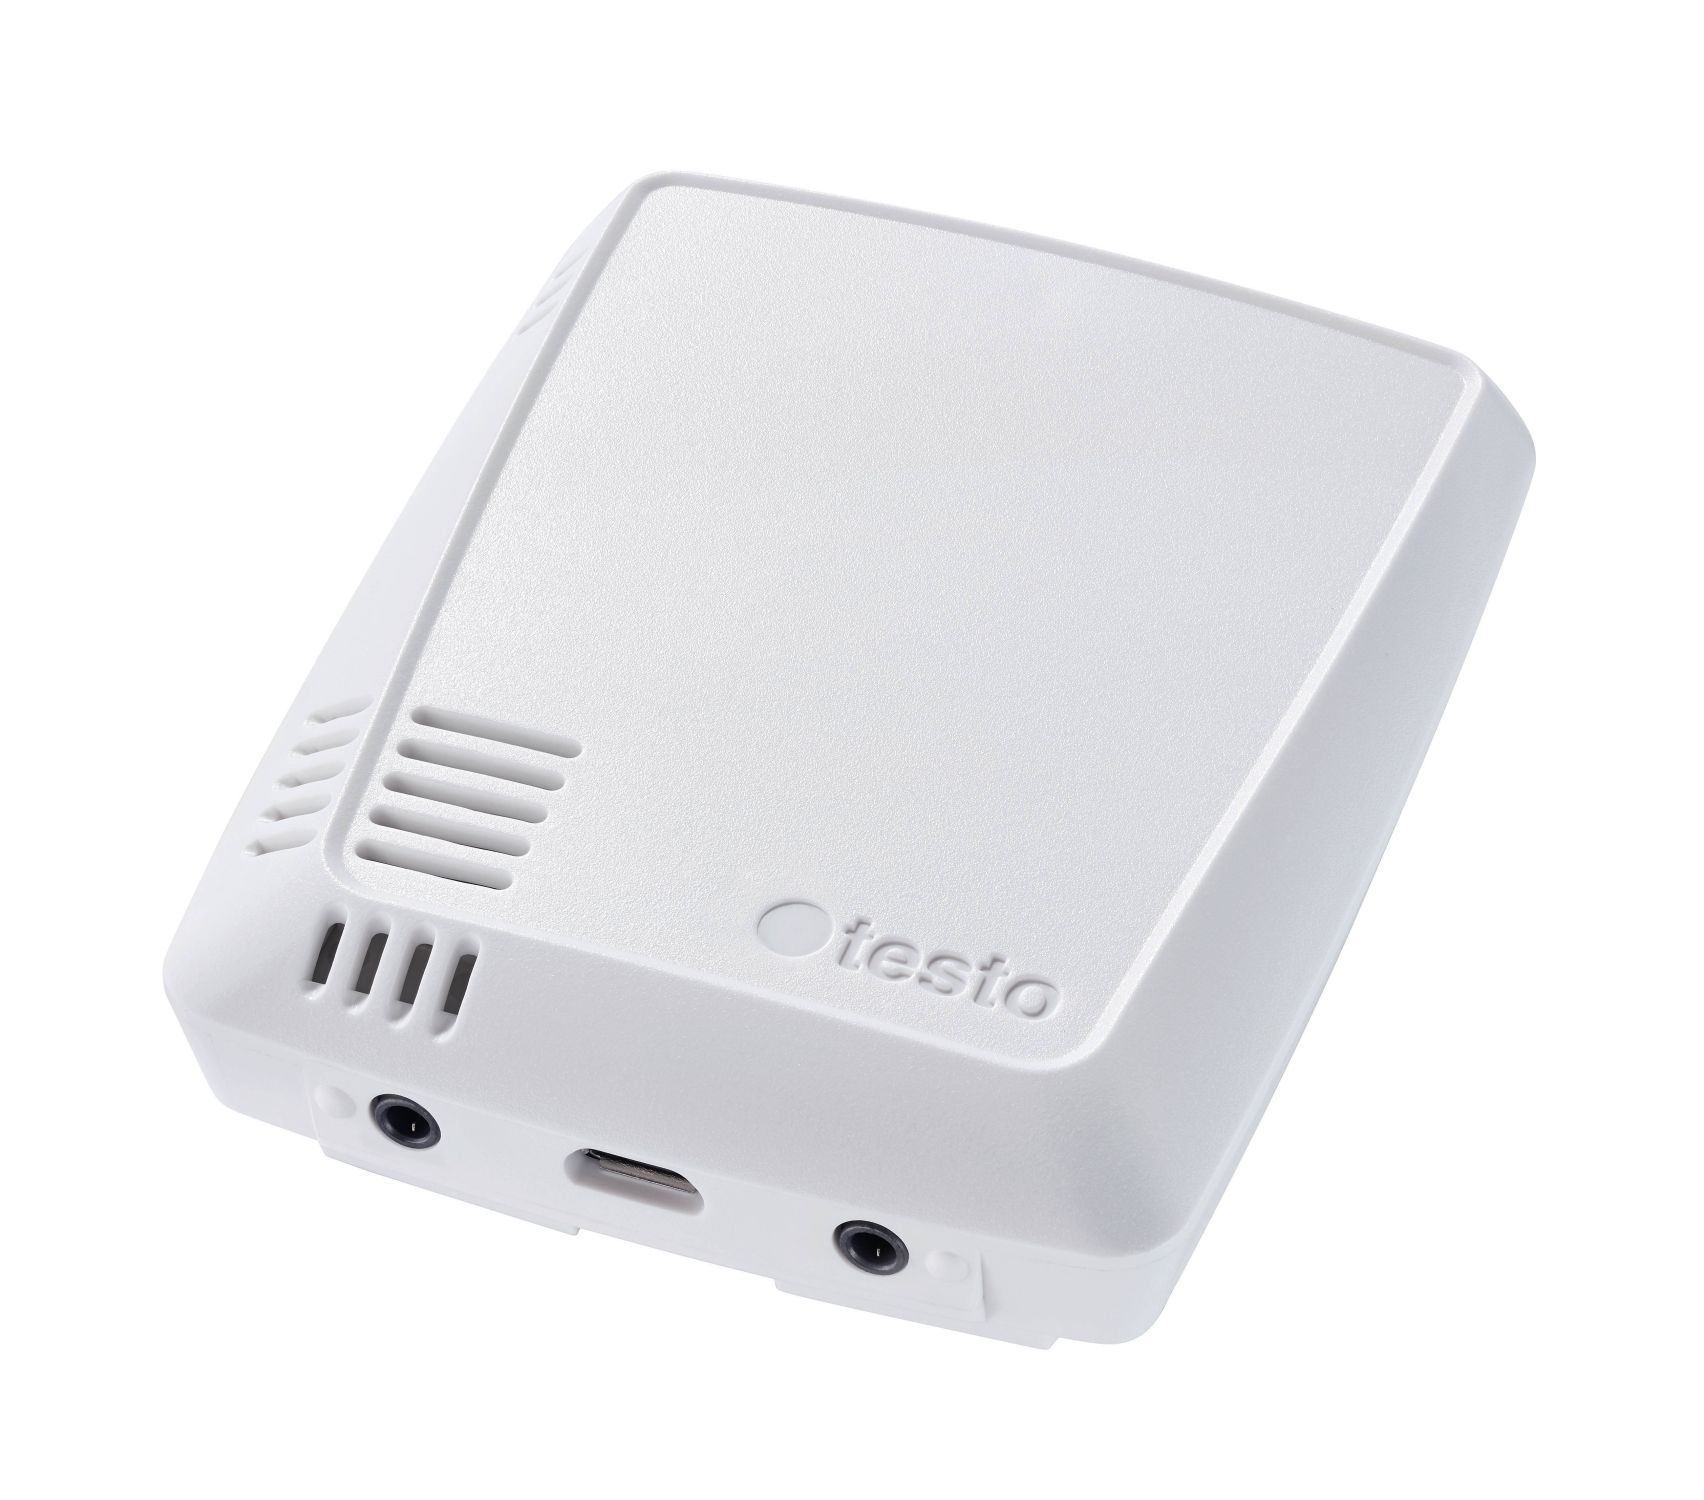 Testo_160_THE_Wi-Fi data logger with internal temperature and humidity sensors and 2 connections for external probes - Wifi Data-Logger with integrated temperature and humidity sensor and 2 connections for probes